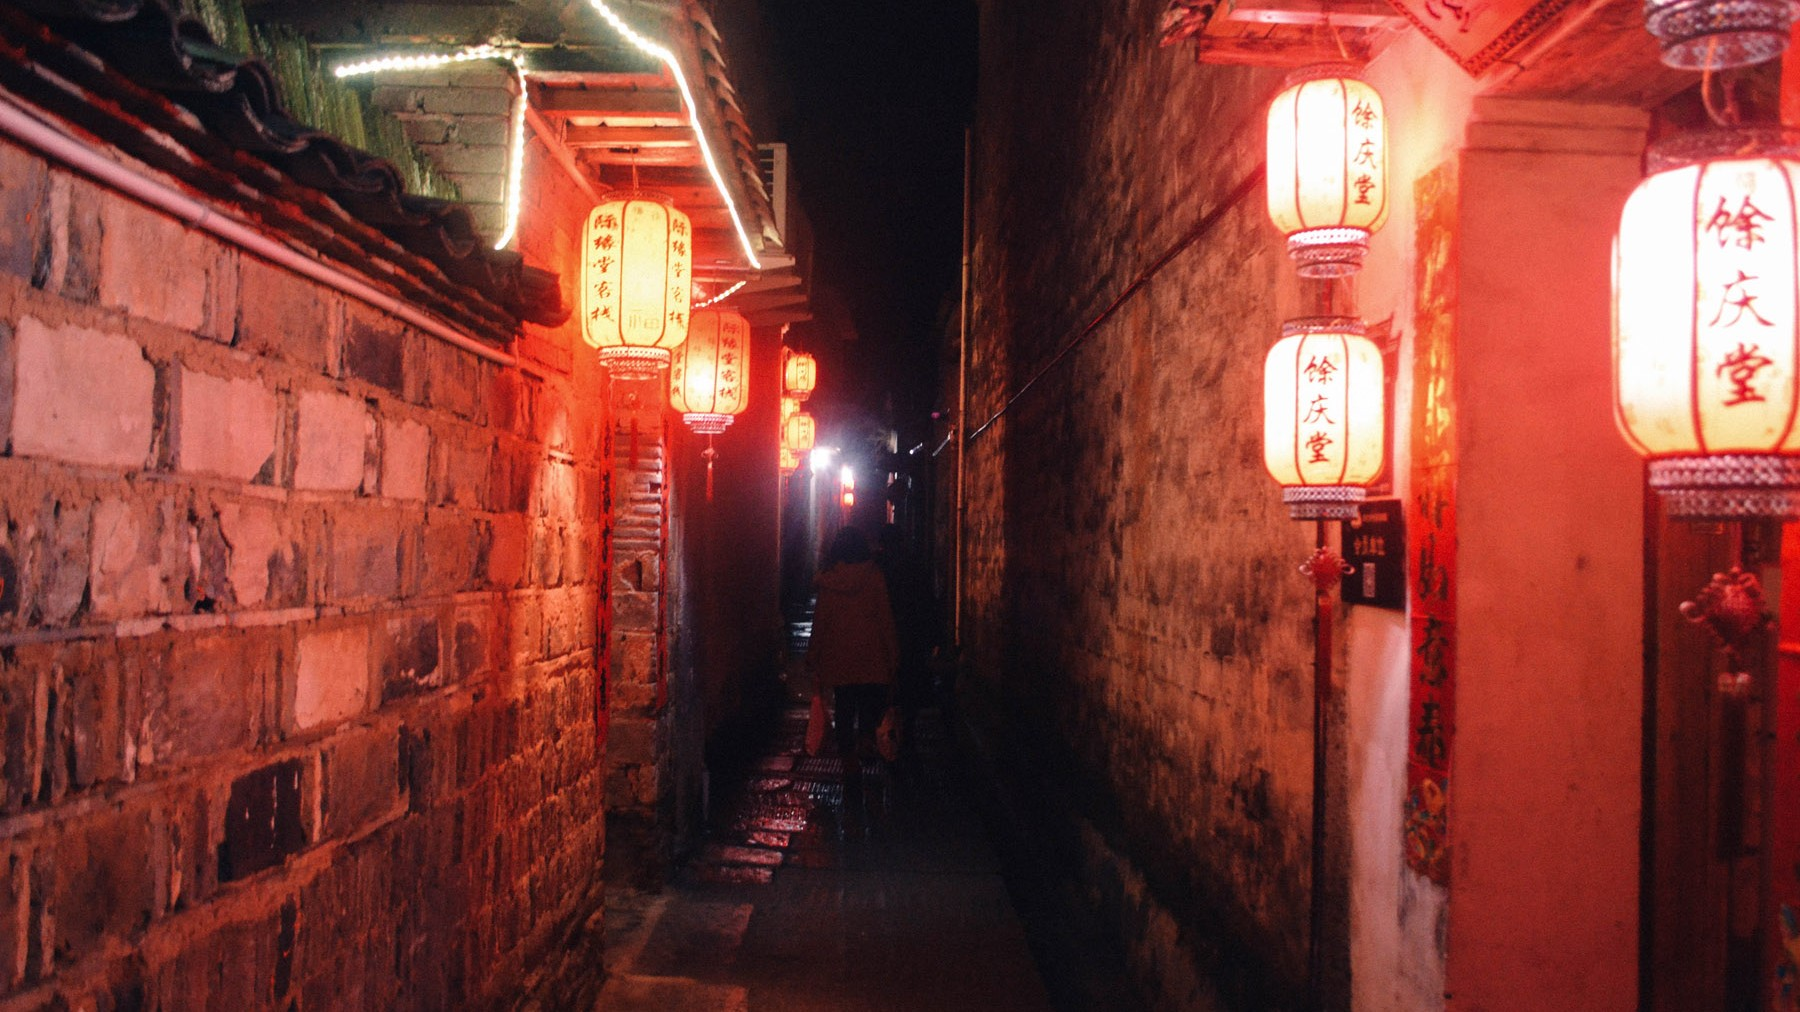 hongcun-at-night_24991020561_o